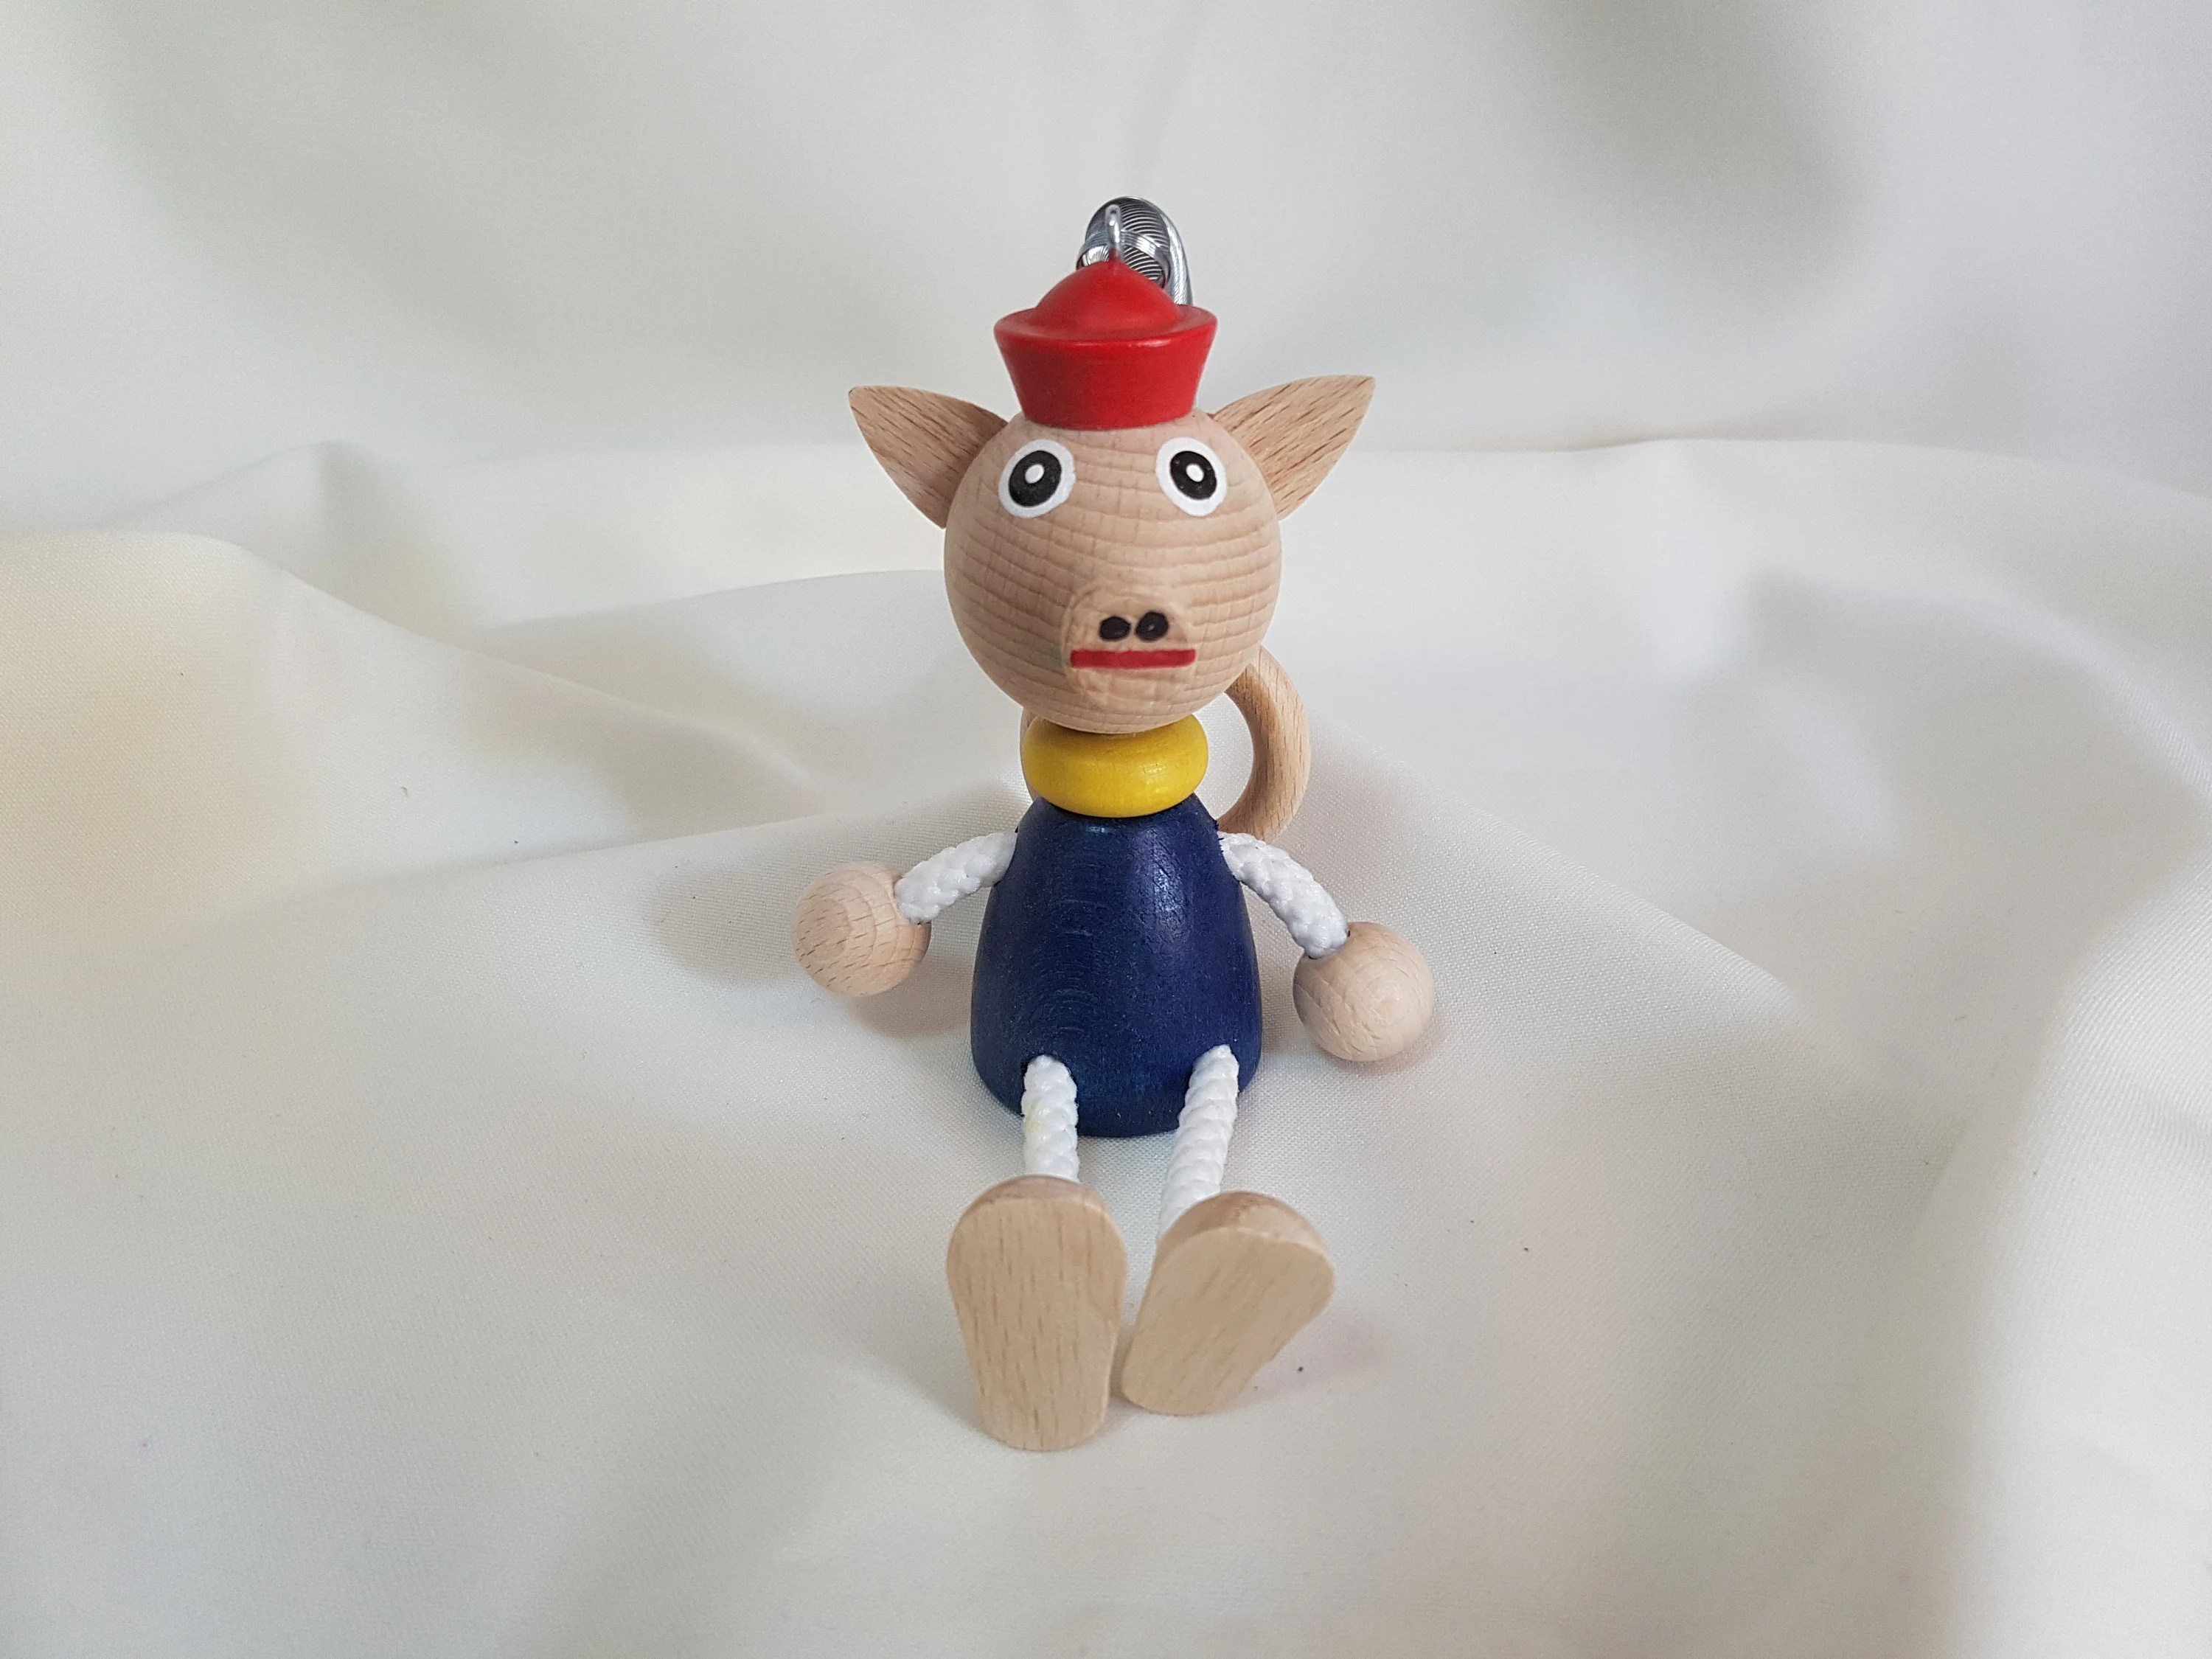 Pig Personalizable Kids Toys Wooden Pig Doll on Coil image 1